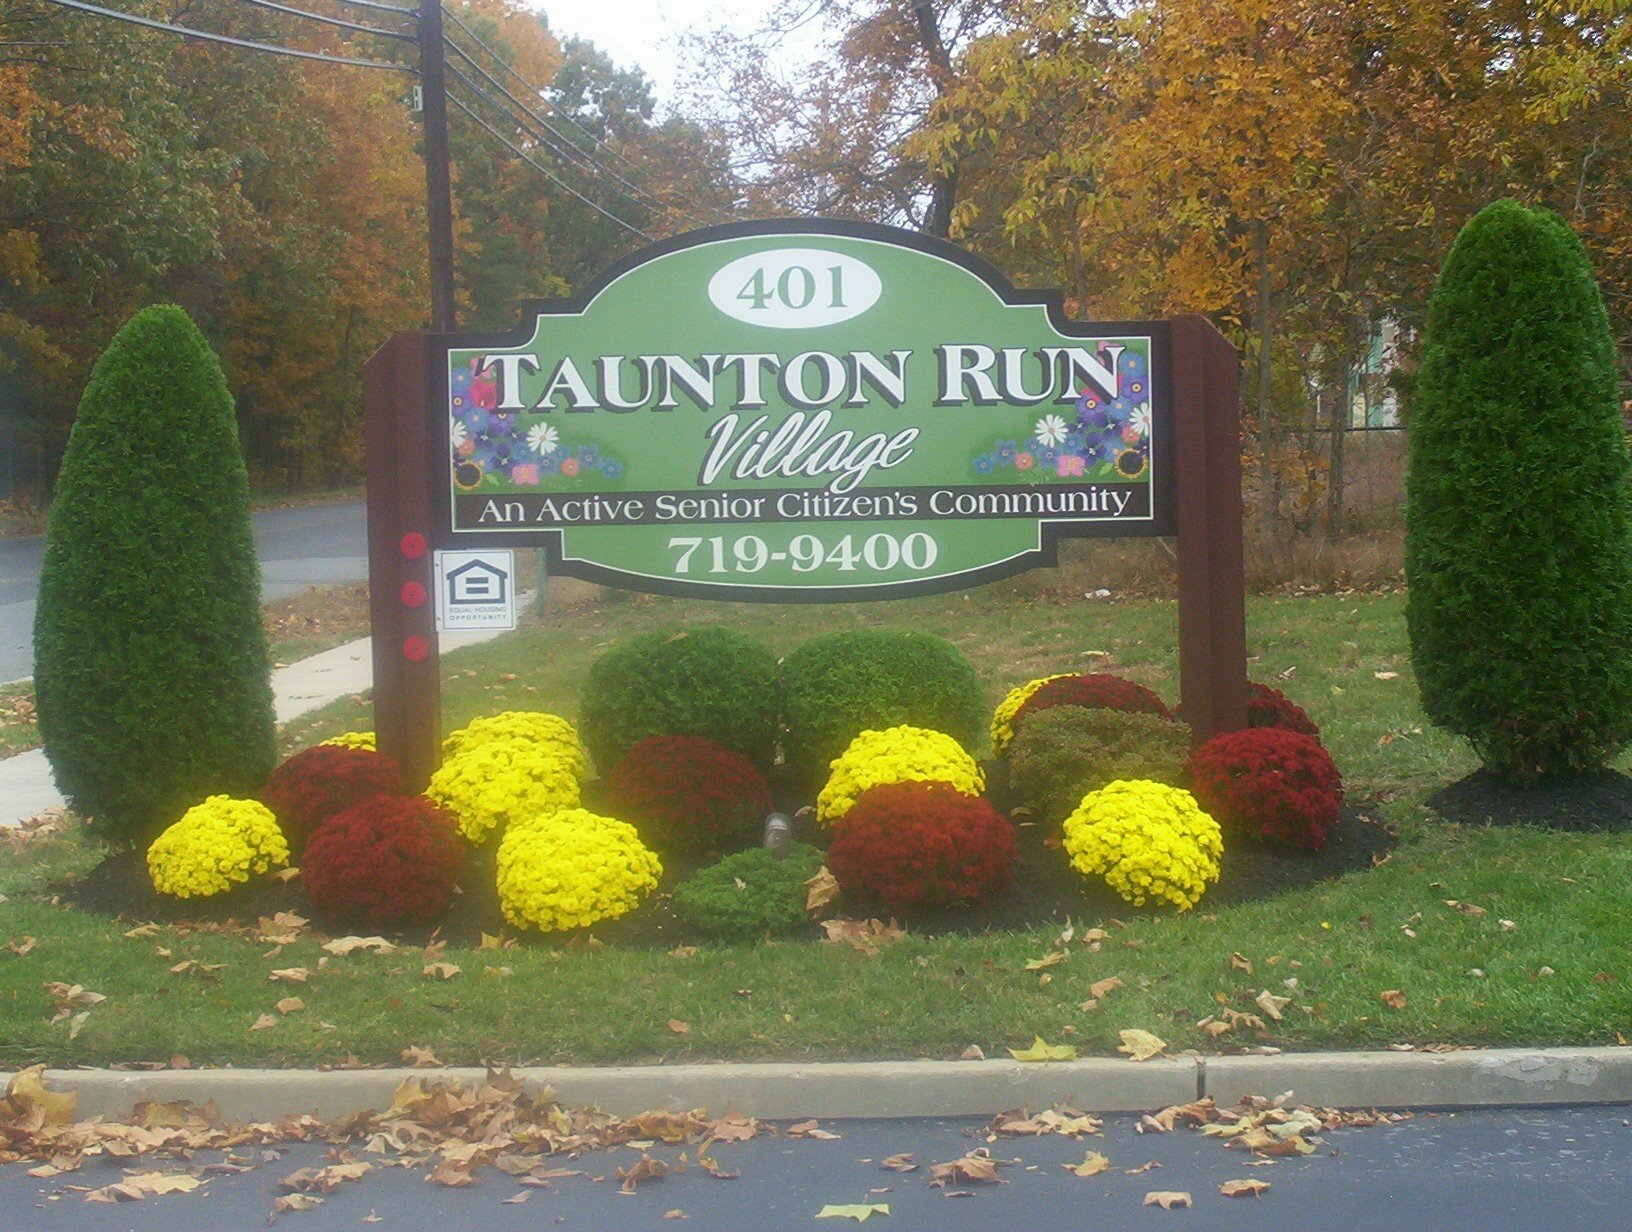 Taunton Run Village